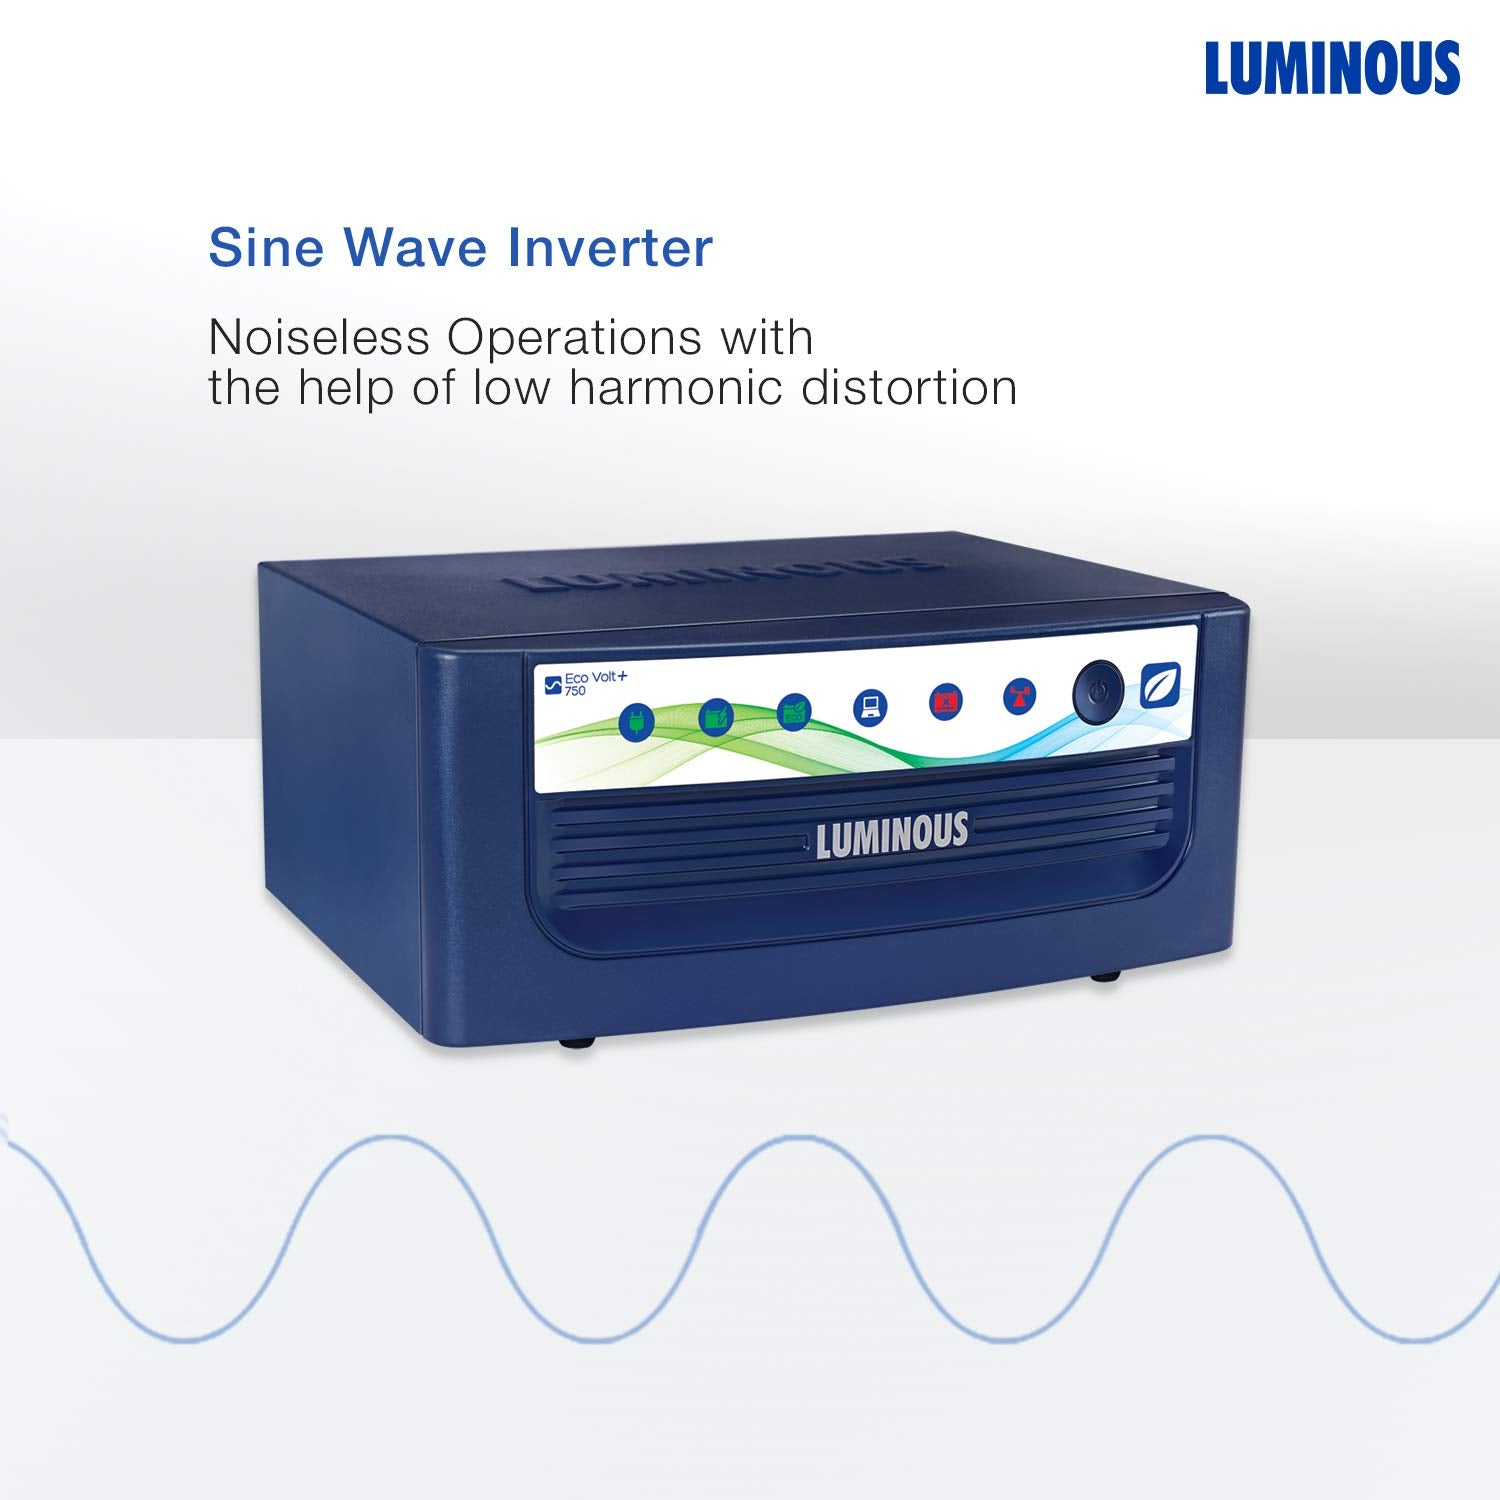 Buy Luminous Eco volt+ 750 sine wave inverter for Home